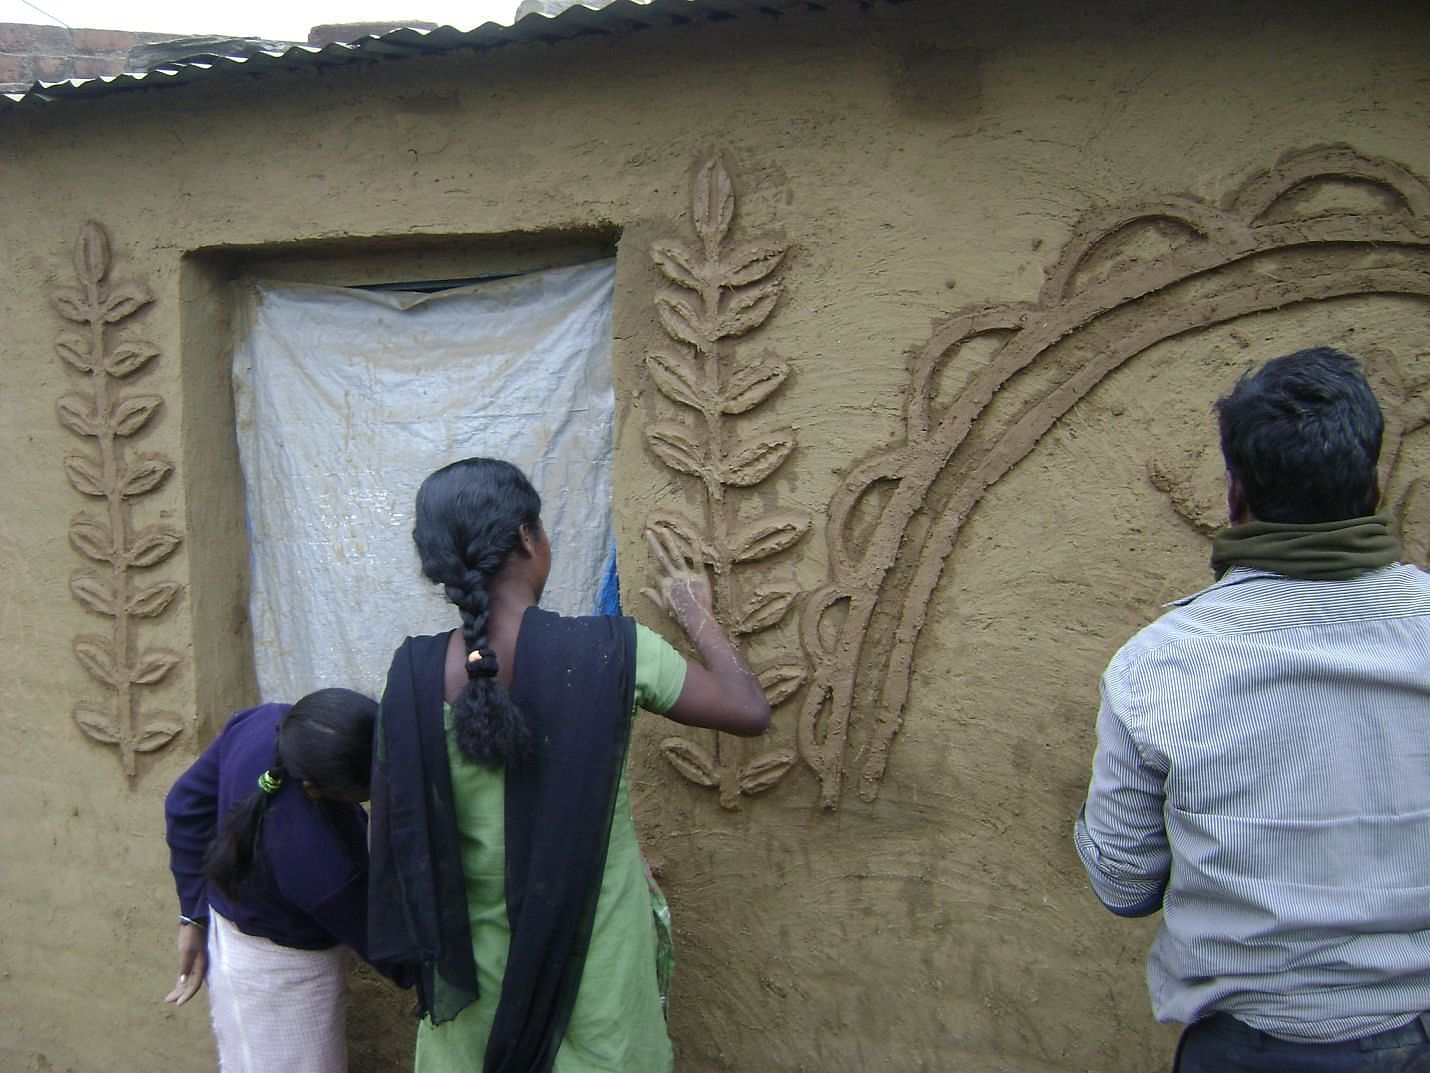 Display of art work on the walls of the community hall by the Santhals